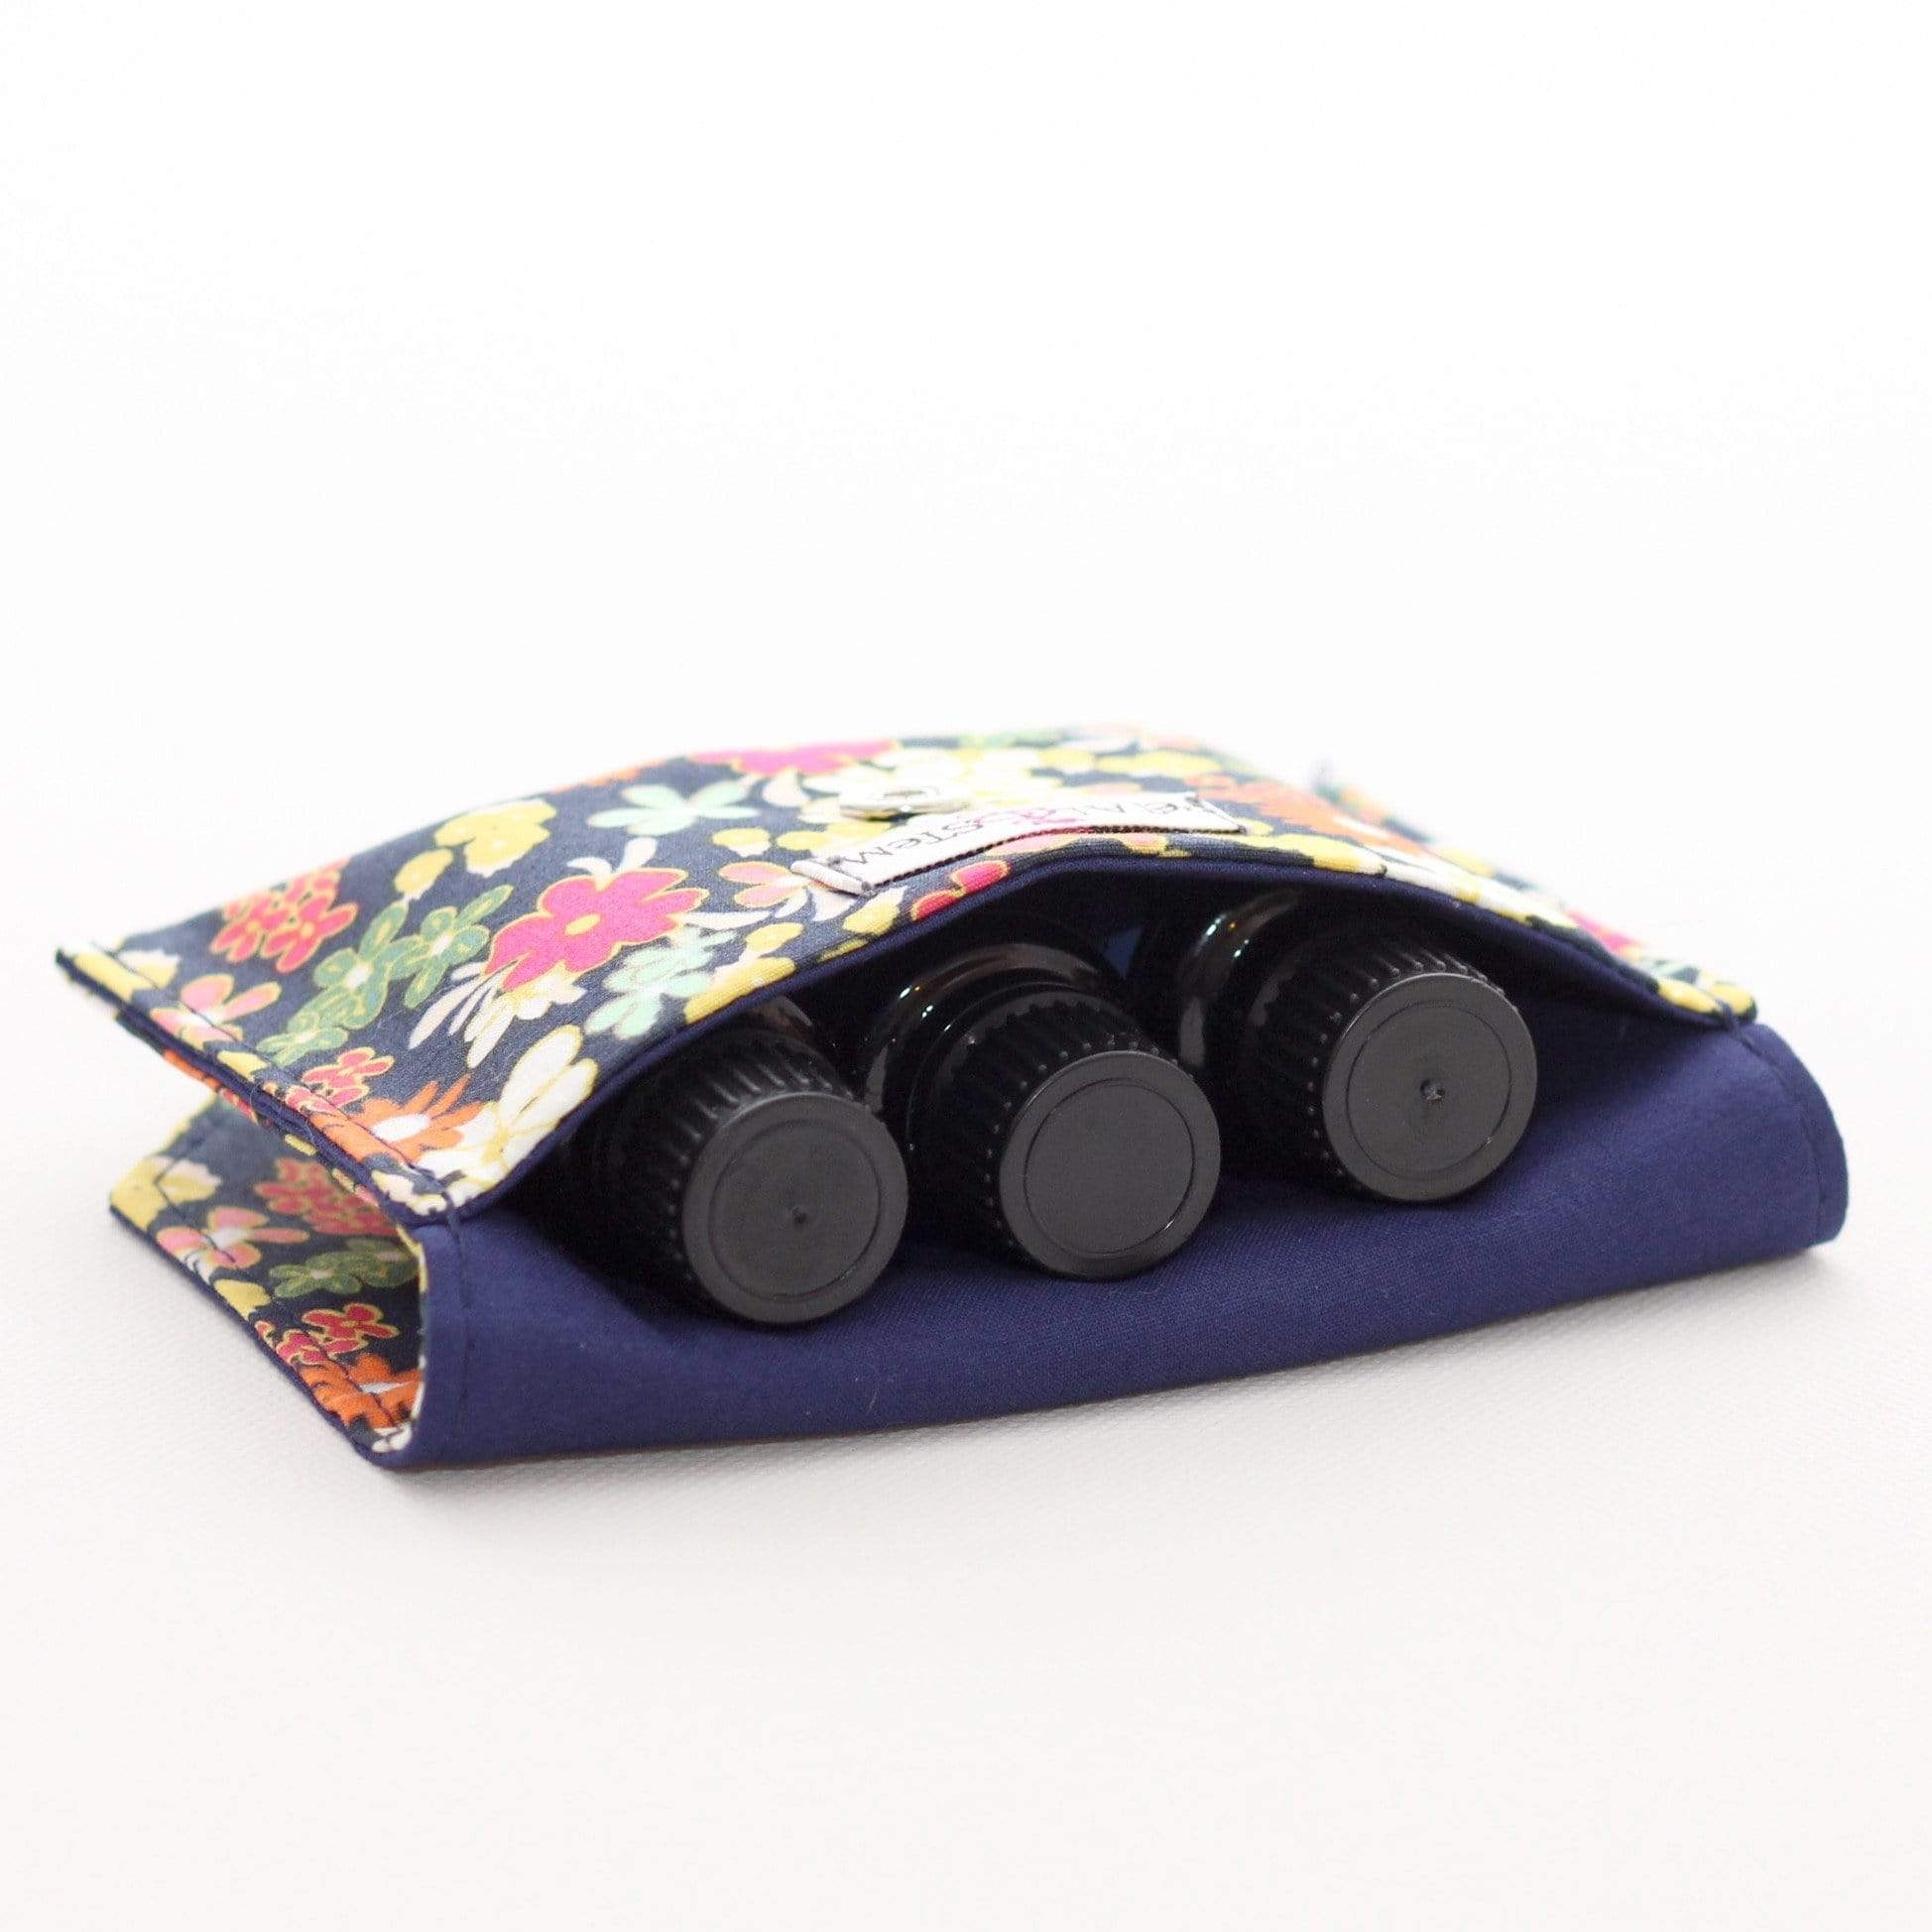 Essential Oil Bag (small) Flowers & Petals - Holds your most important oils - Petal and Stem